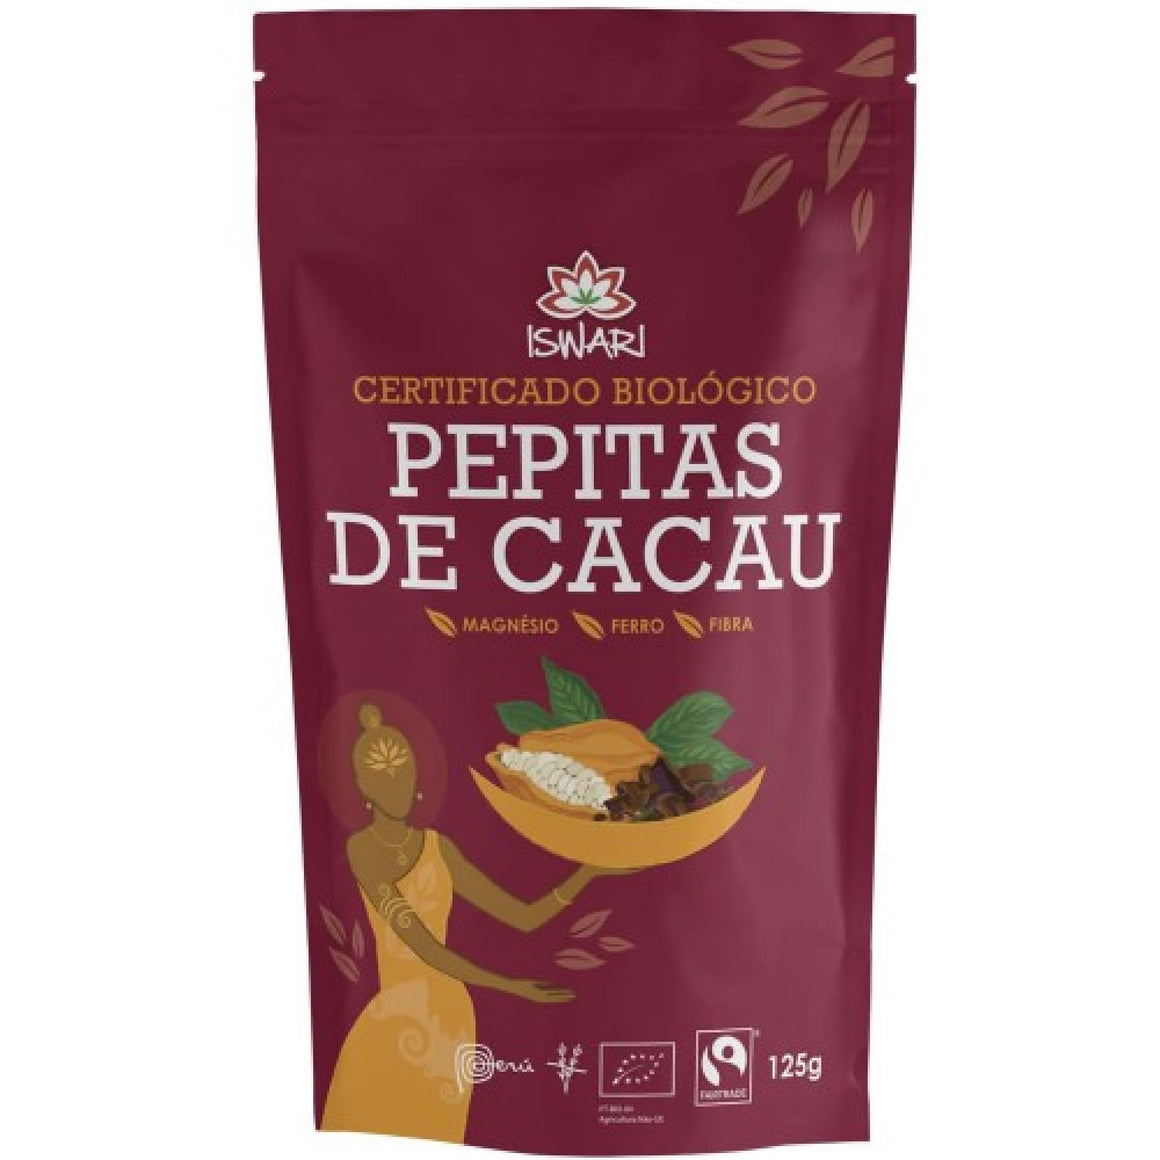 Pepitas de cacau cru biológicas Fairtrade